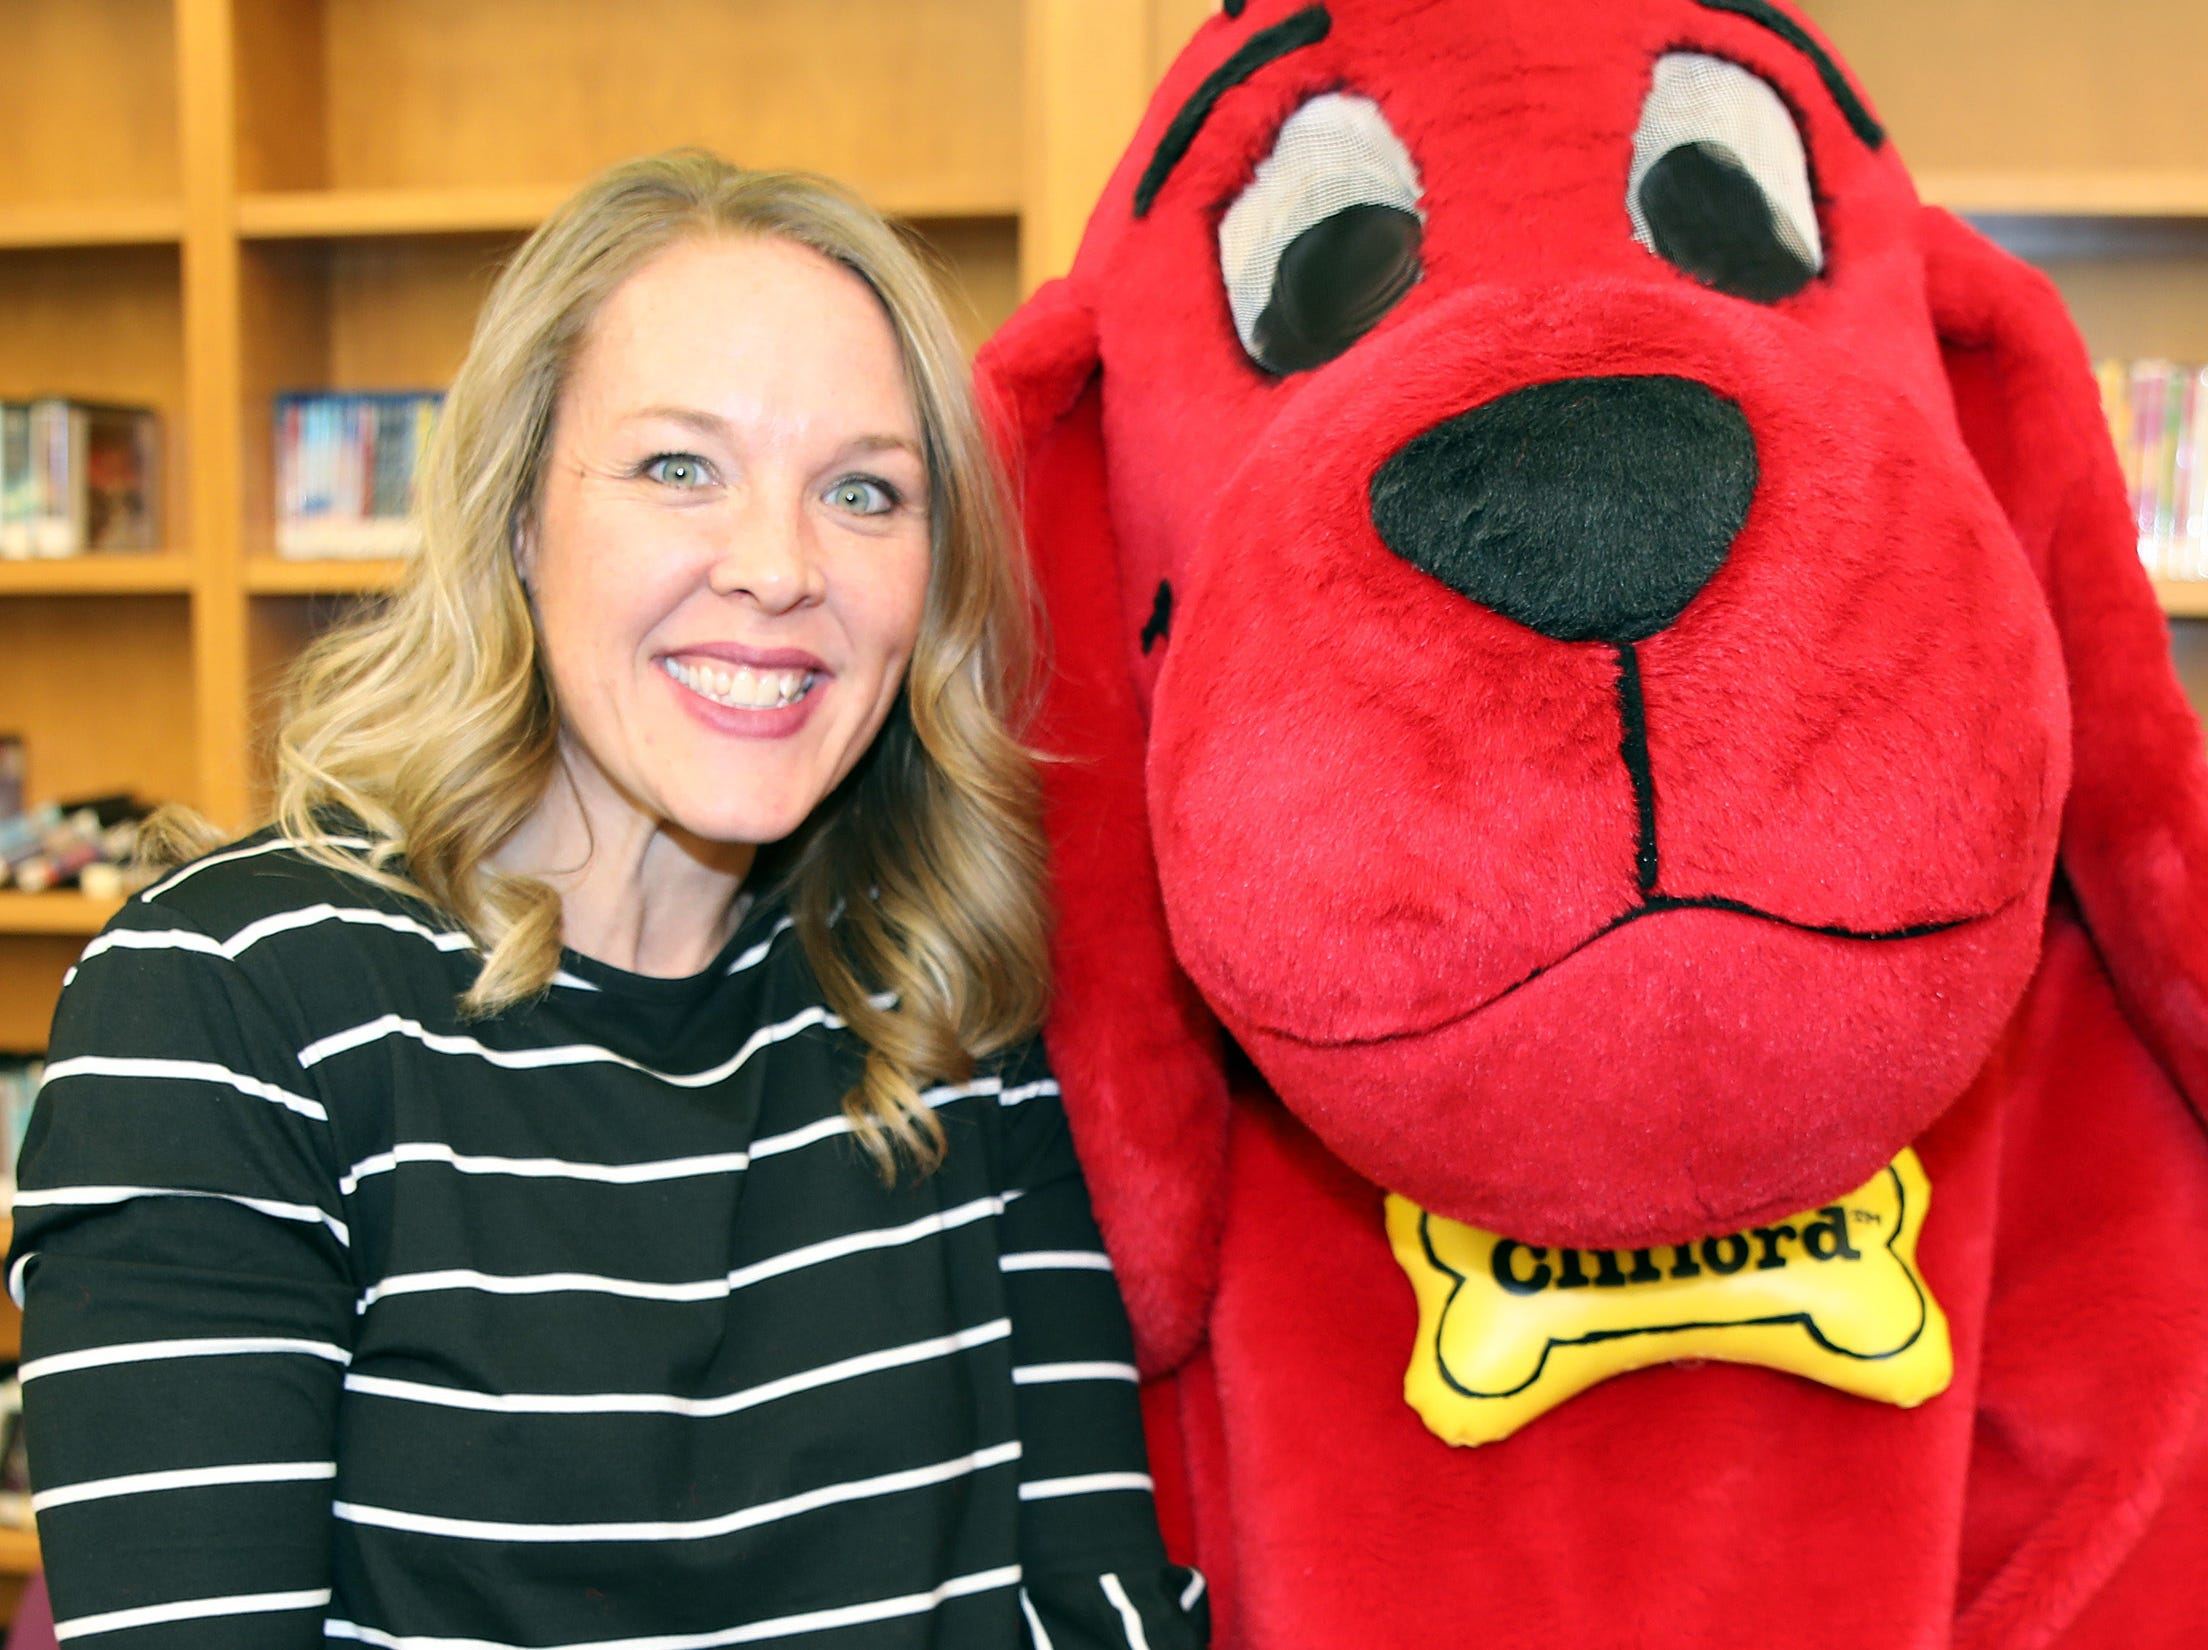 Children's Librarian Kelly Munter poses for a photo Clifford the Big Red Dog during his birthday Party at Kirkendall Public Library in Ankeny on Tuesday, Feb. 5, 2019.